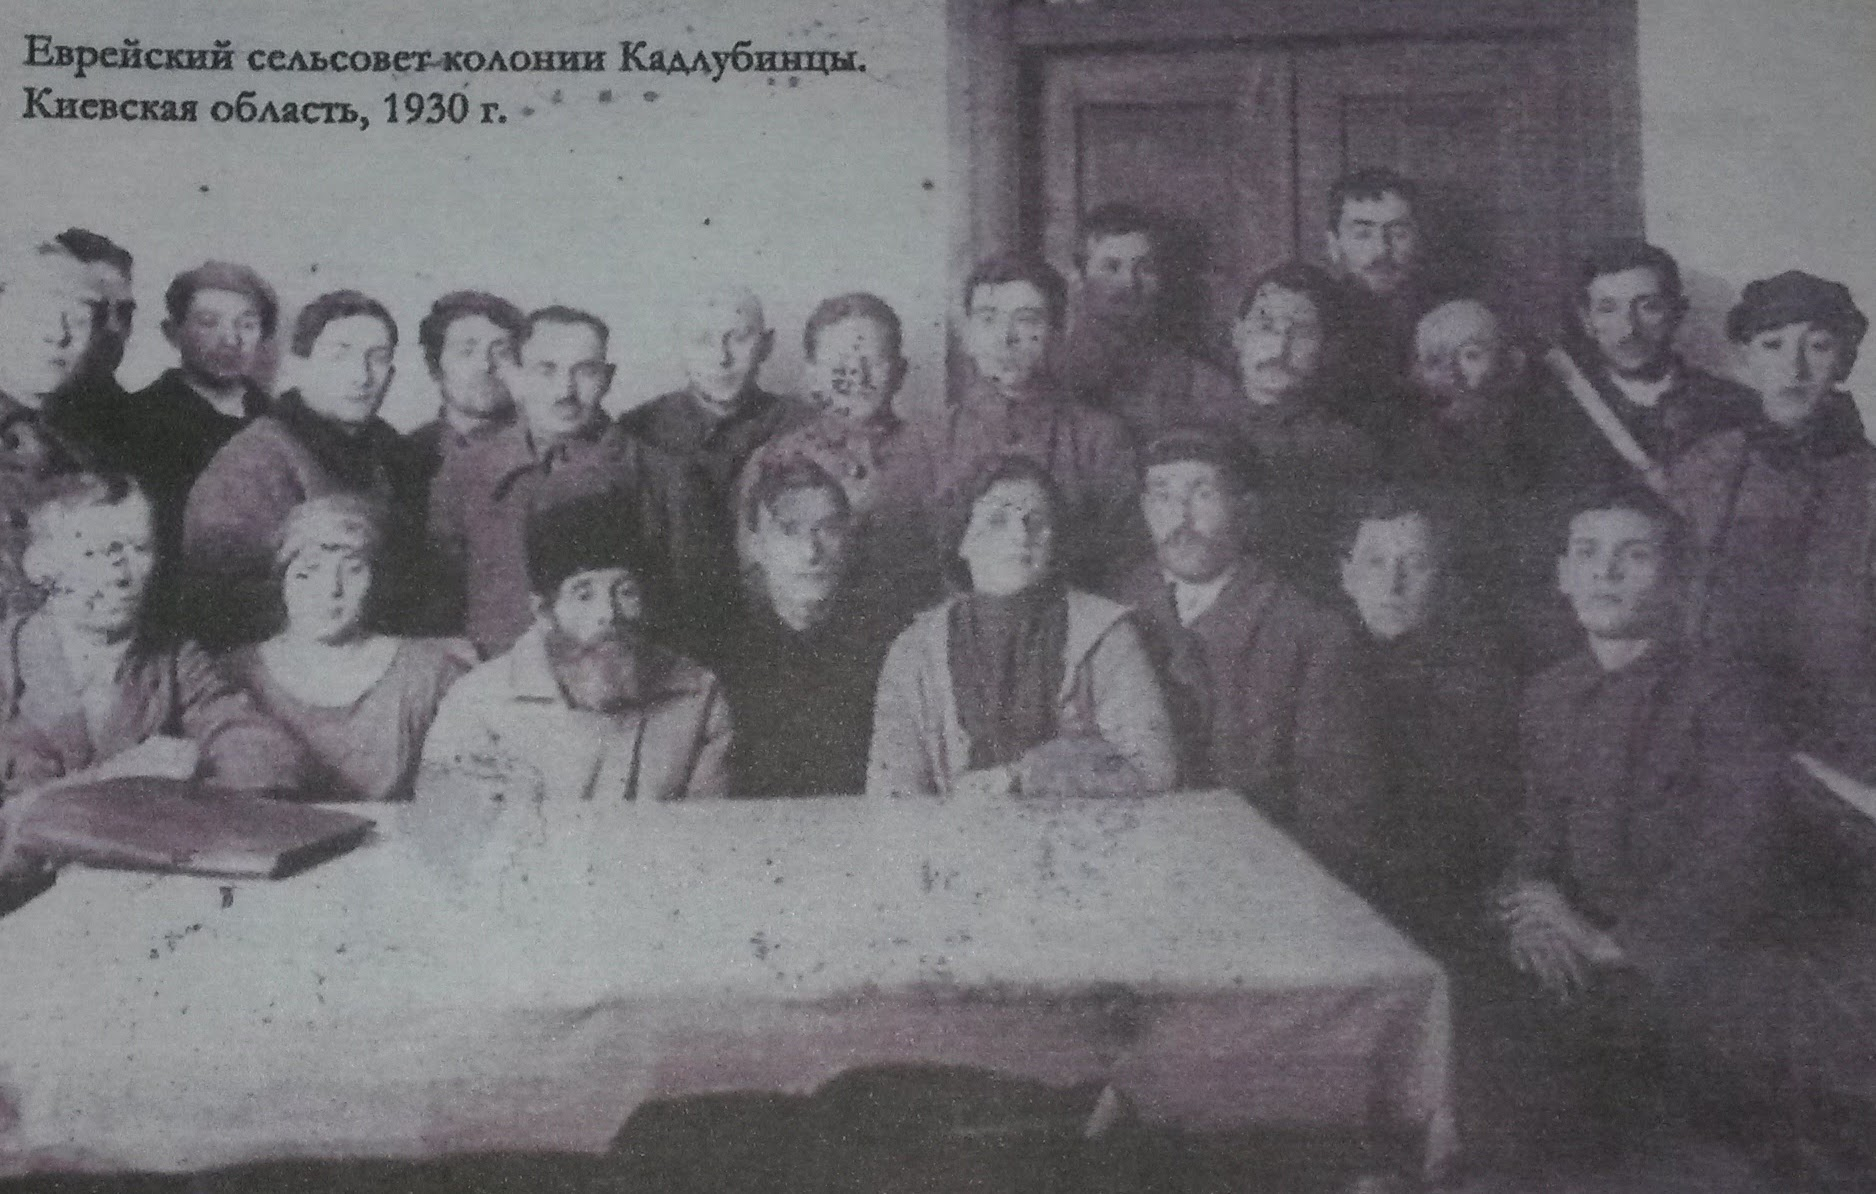 Jewish village council in Kadlubitsya, 1930